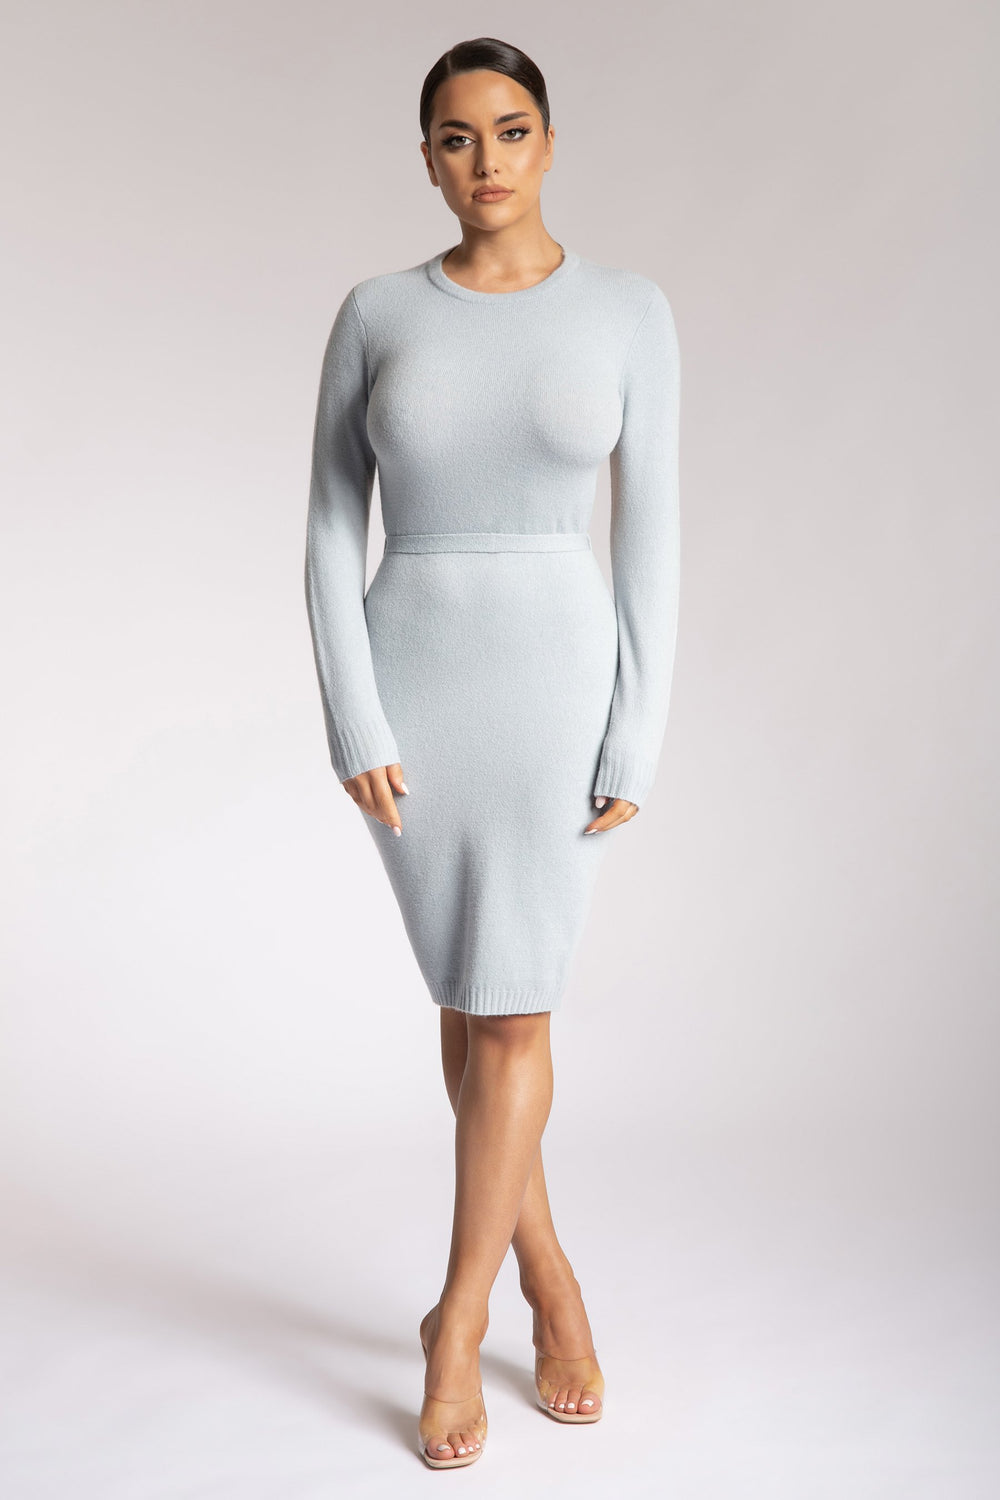 Loretta Long Sleeve Backless Knitted Midi Dress - Baby Blue - MESHKI